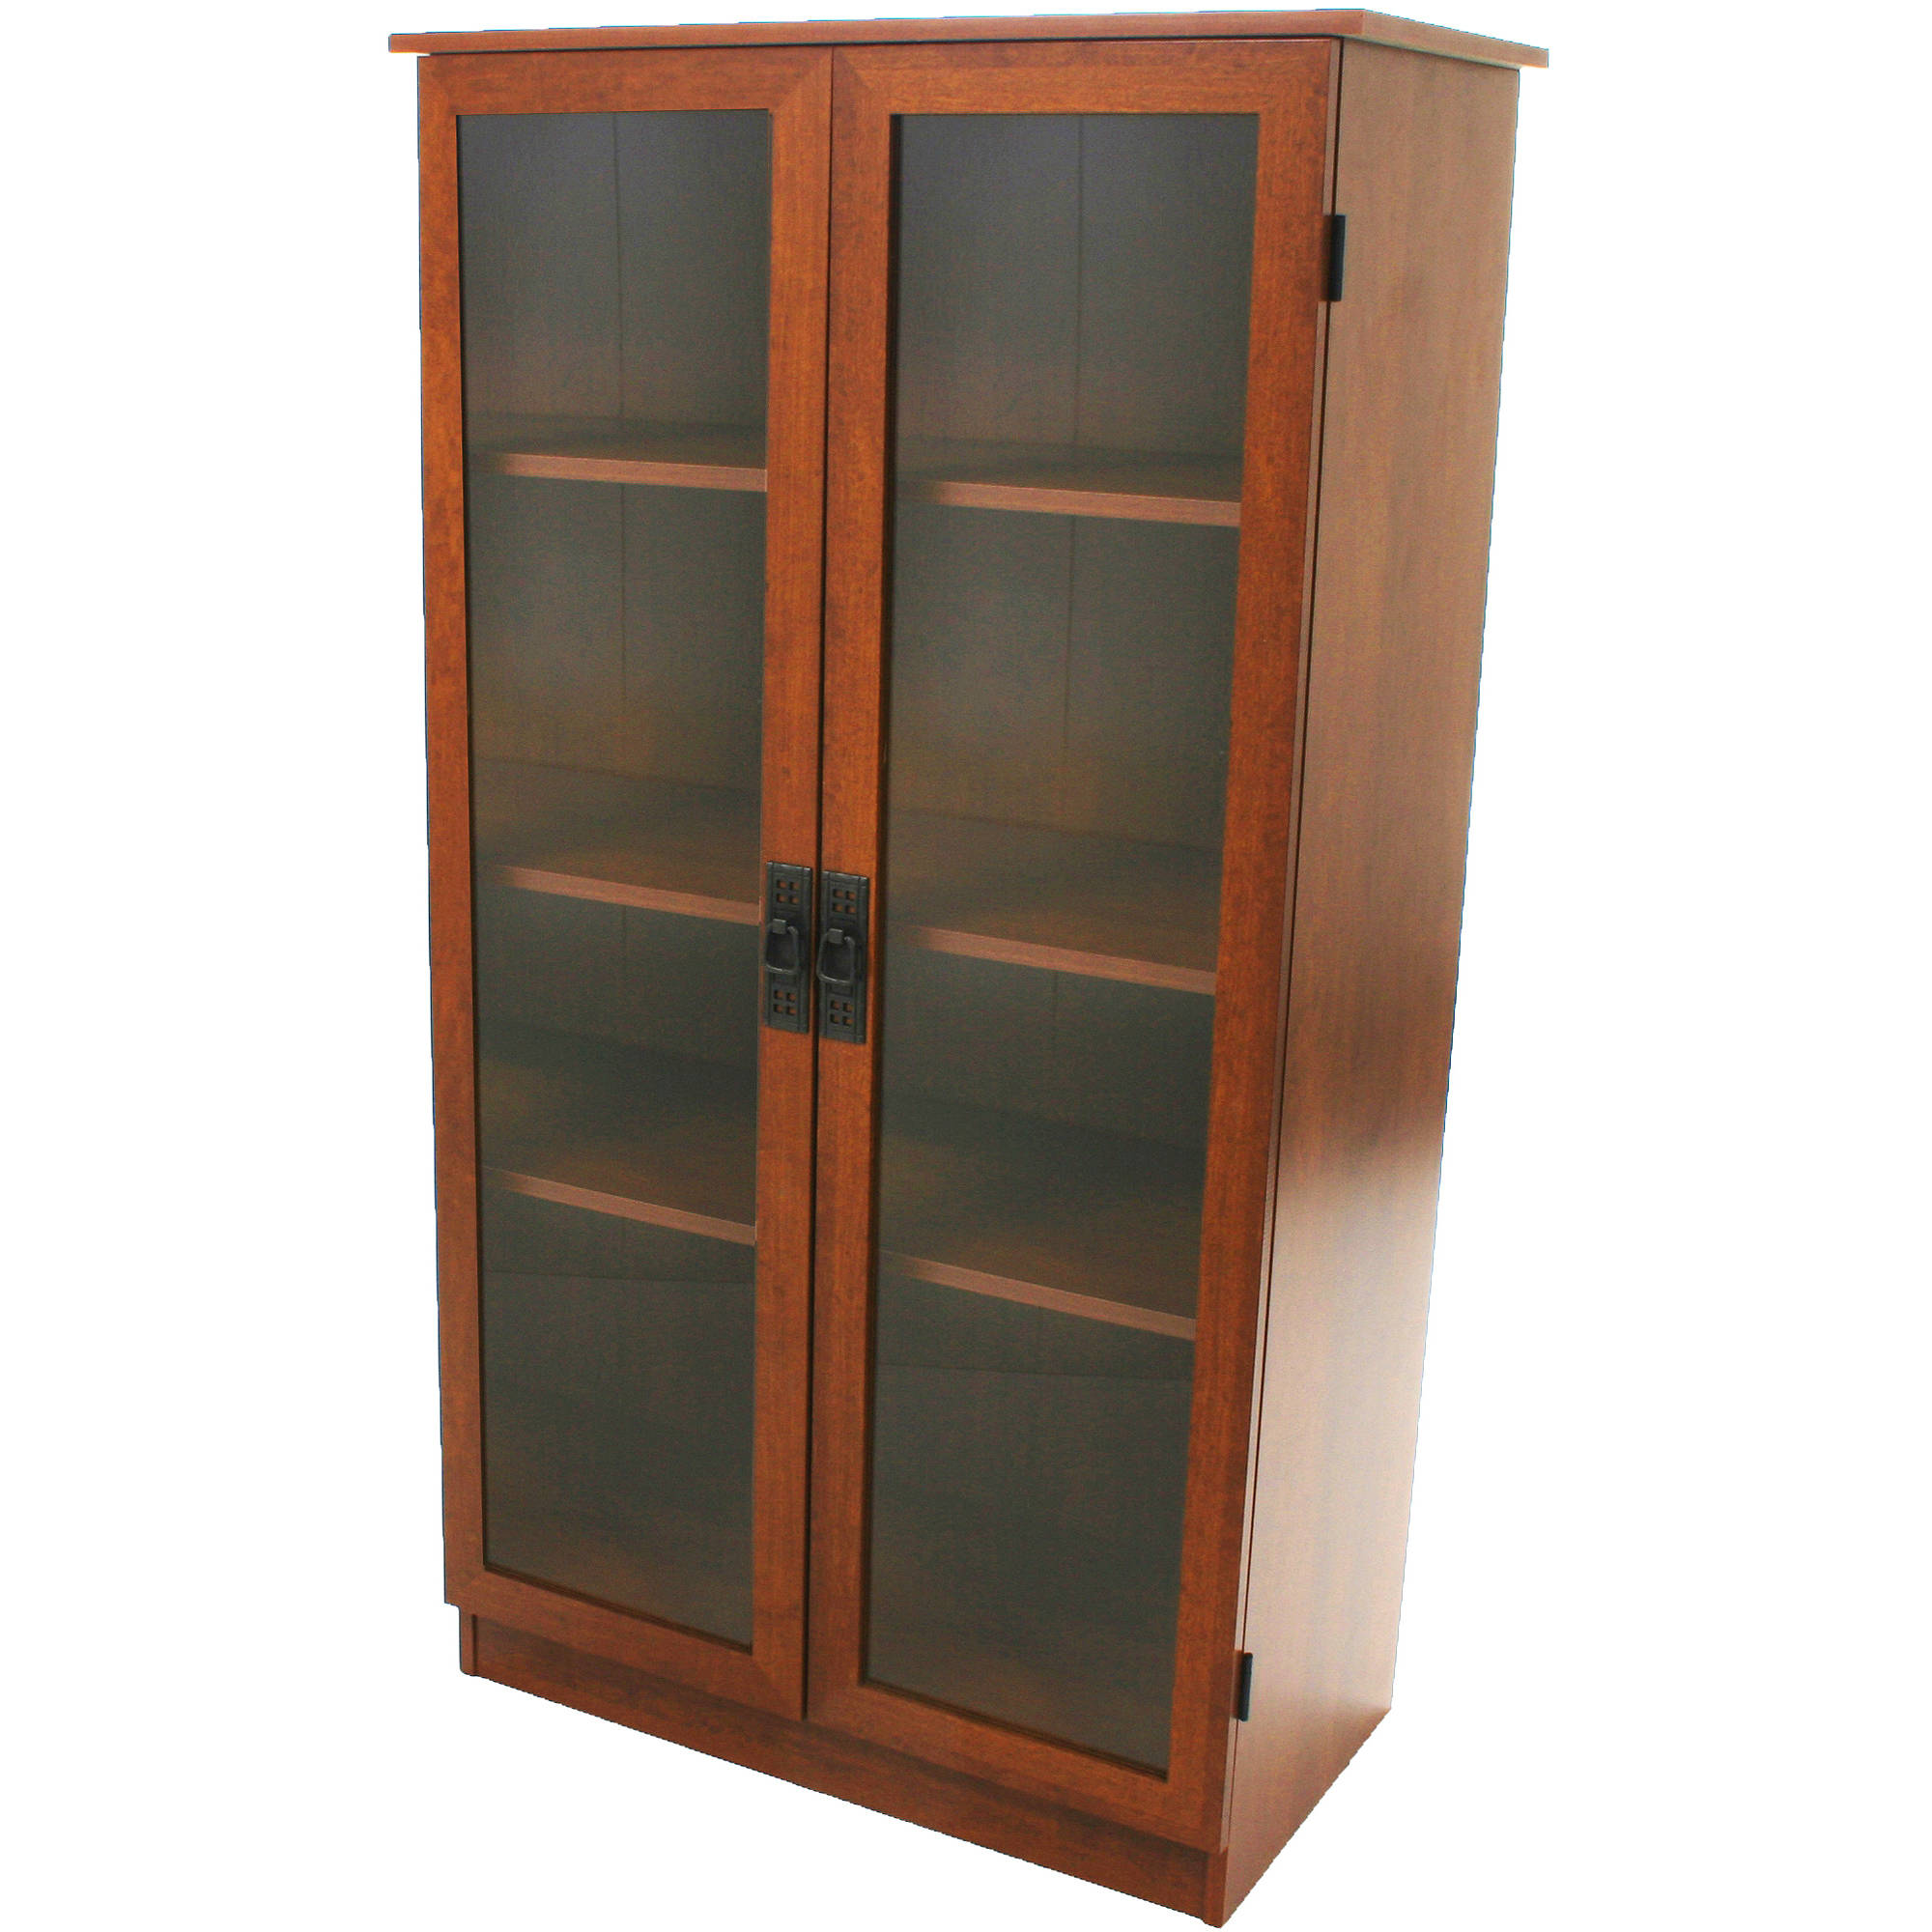 cabinets storage with doors. heirloom storage cabinet with 4 shelves, multiple finishes cabinets doors